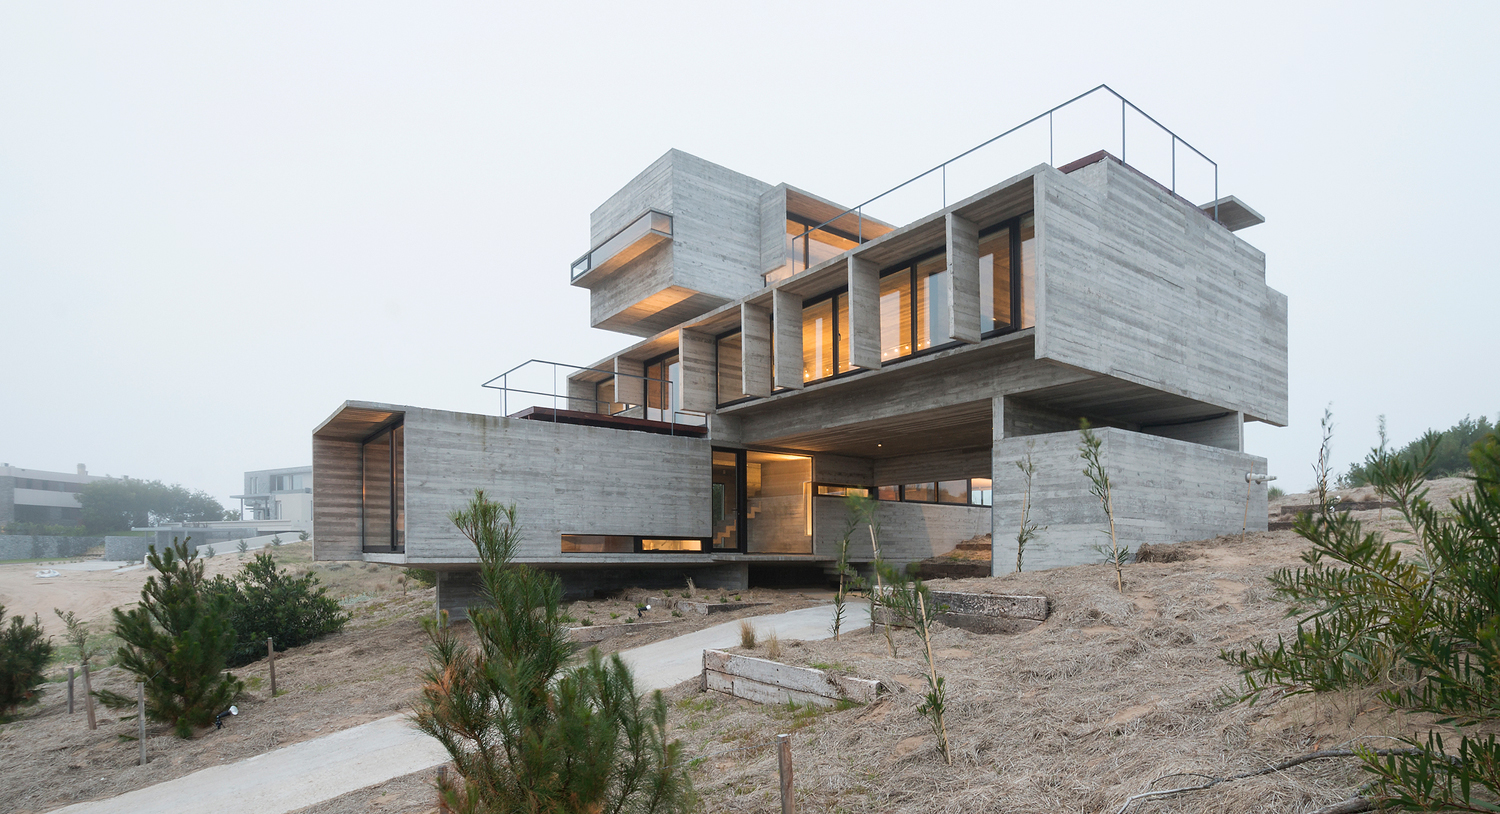 Concrete House by Luciano Kruk